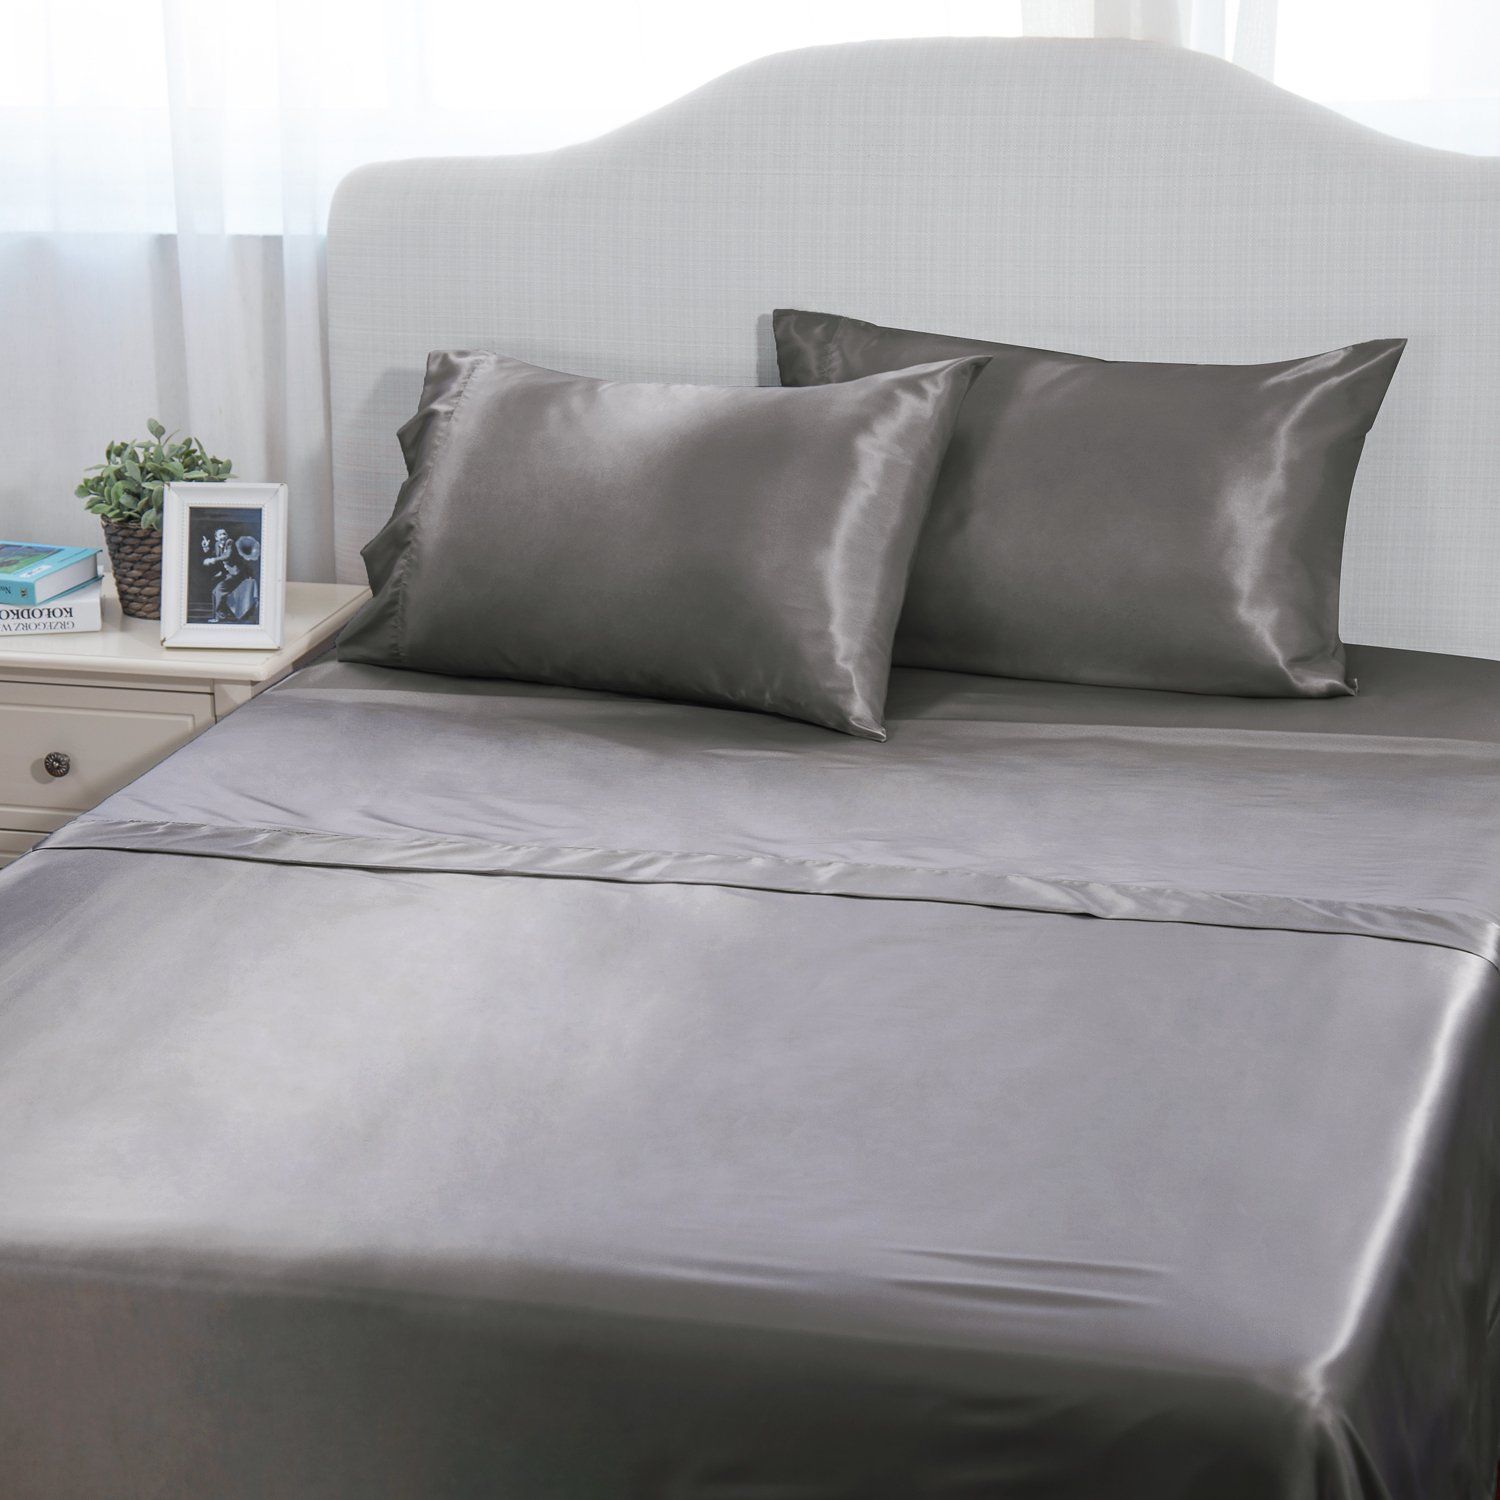 Sheet Set Queen Size Solid Matte Satin Sheets With Deep Pocket Design 4  Piece Grey Silky